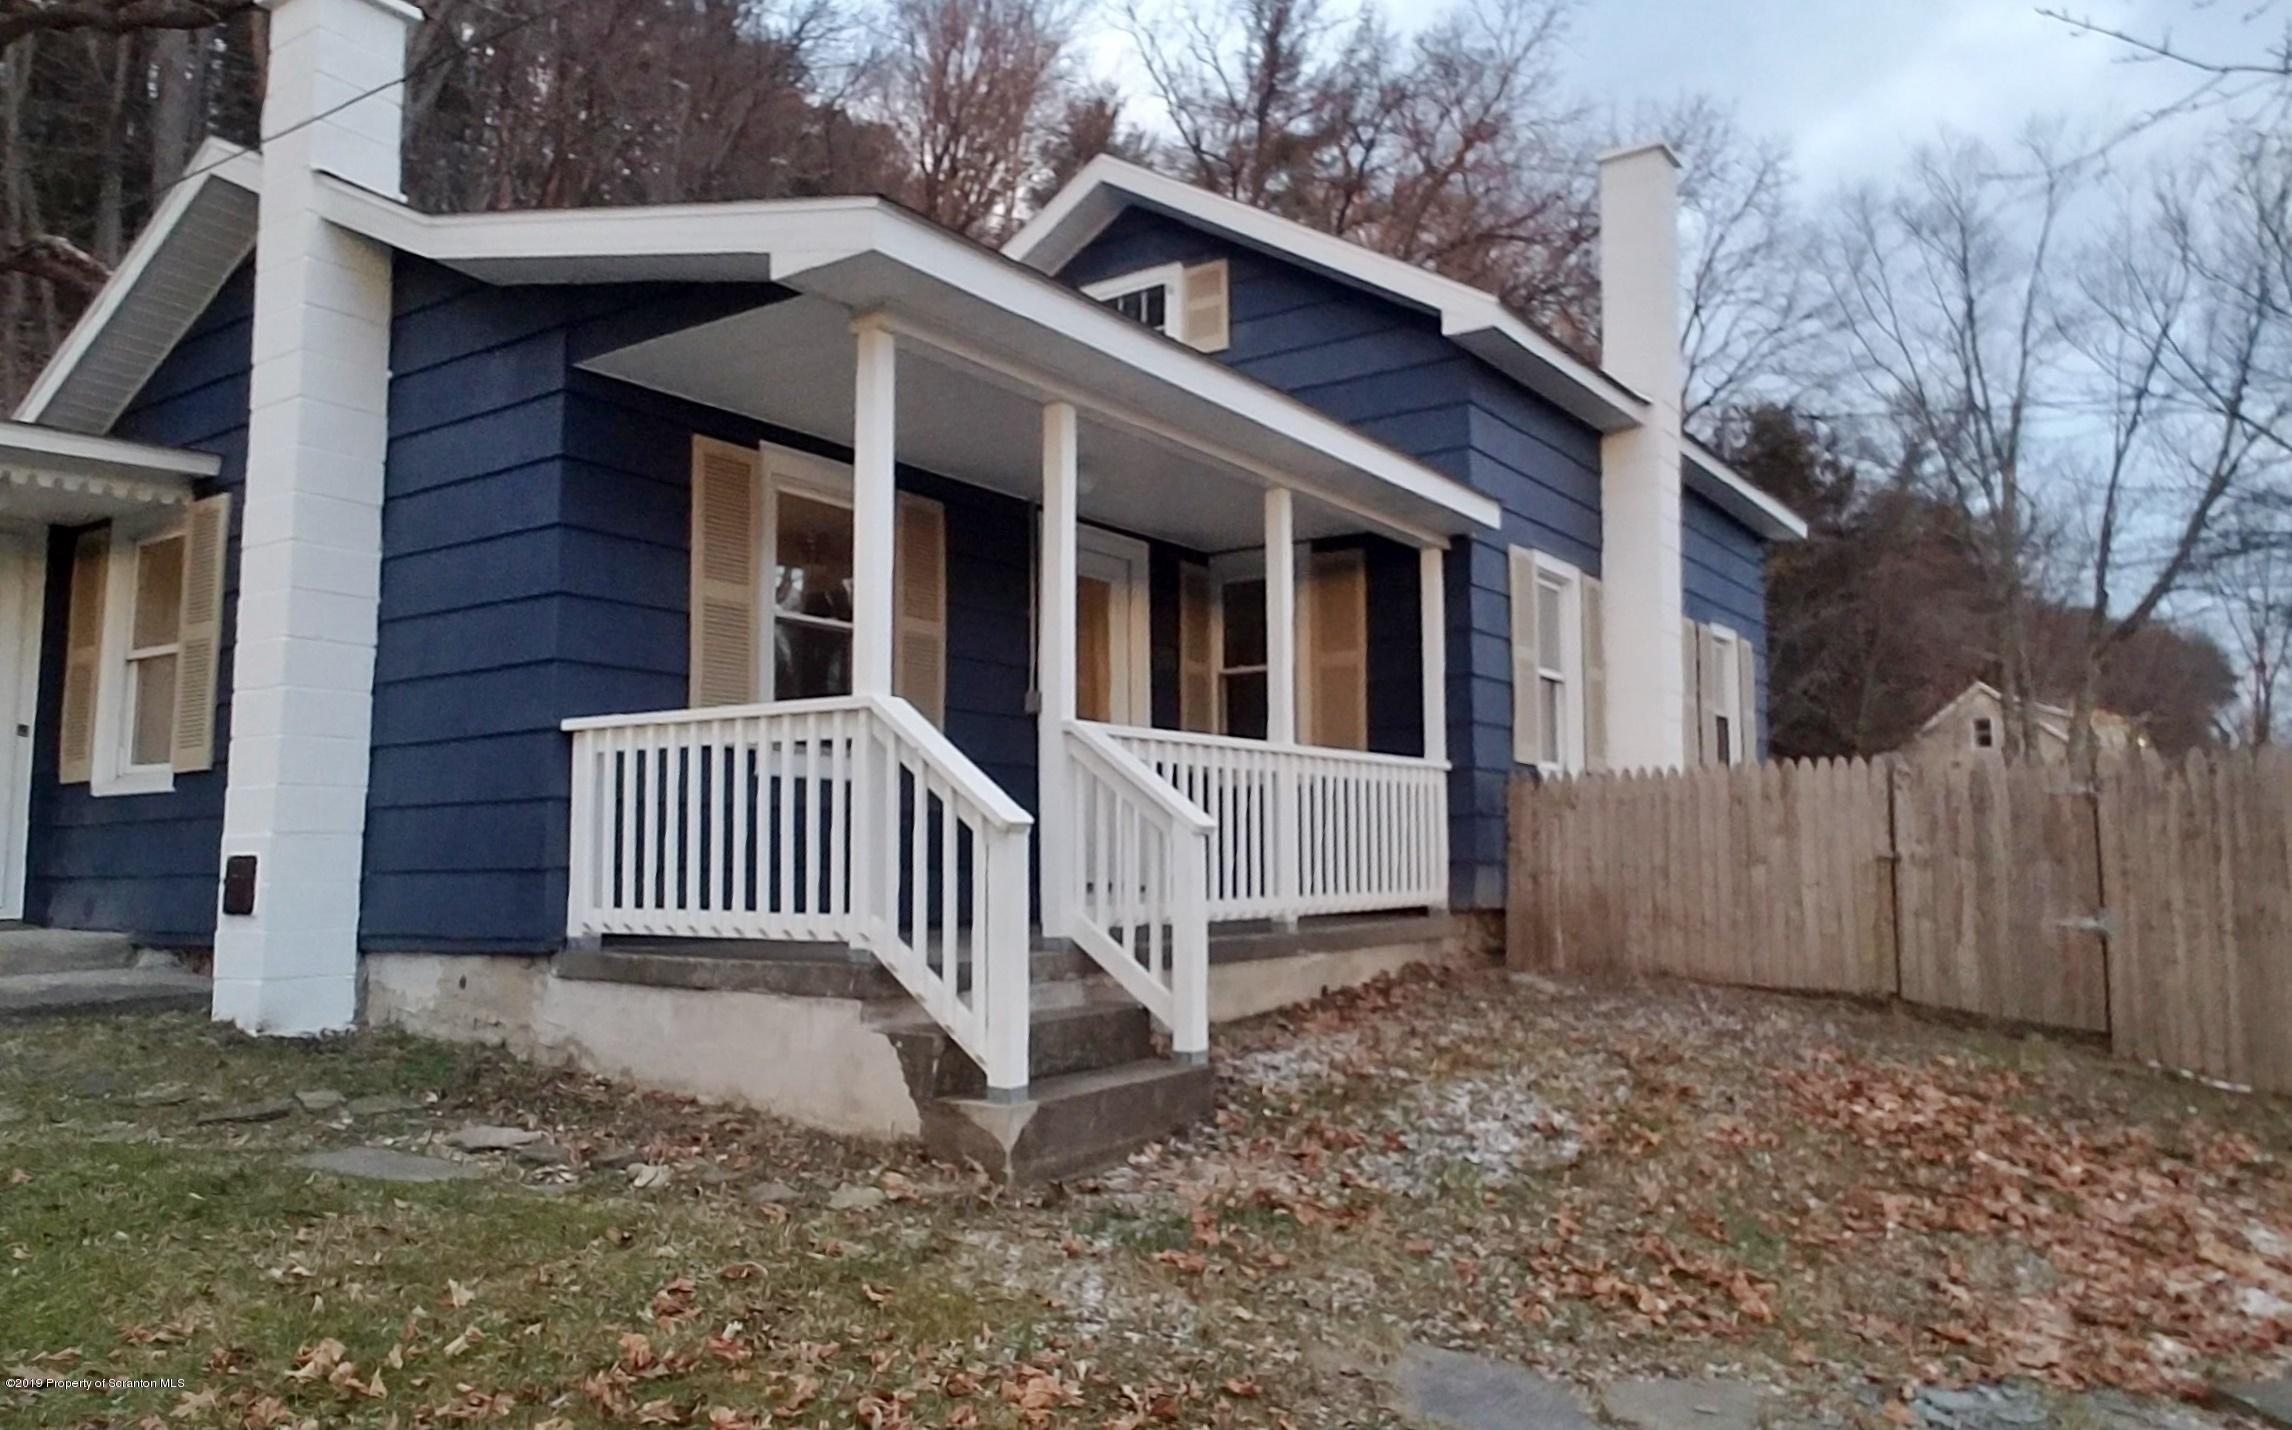 911 E State Route 6, Tunkhannock, Pennsylvania 18657, ,1 BathroomBathrooms,Commercial,For Sale,E State Route 6,19-473